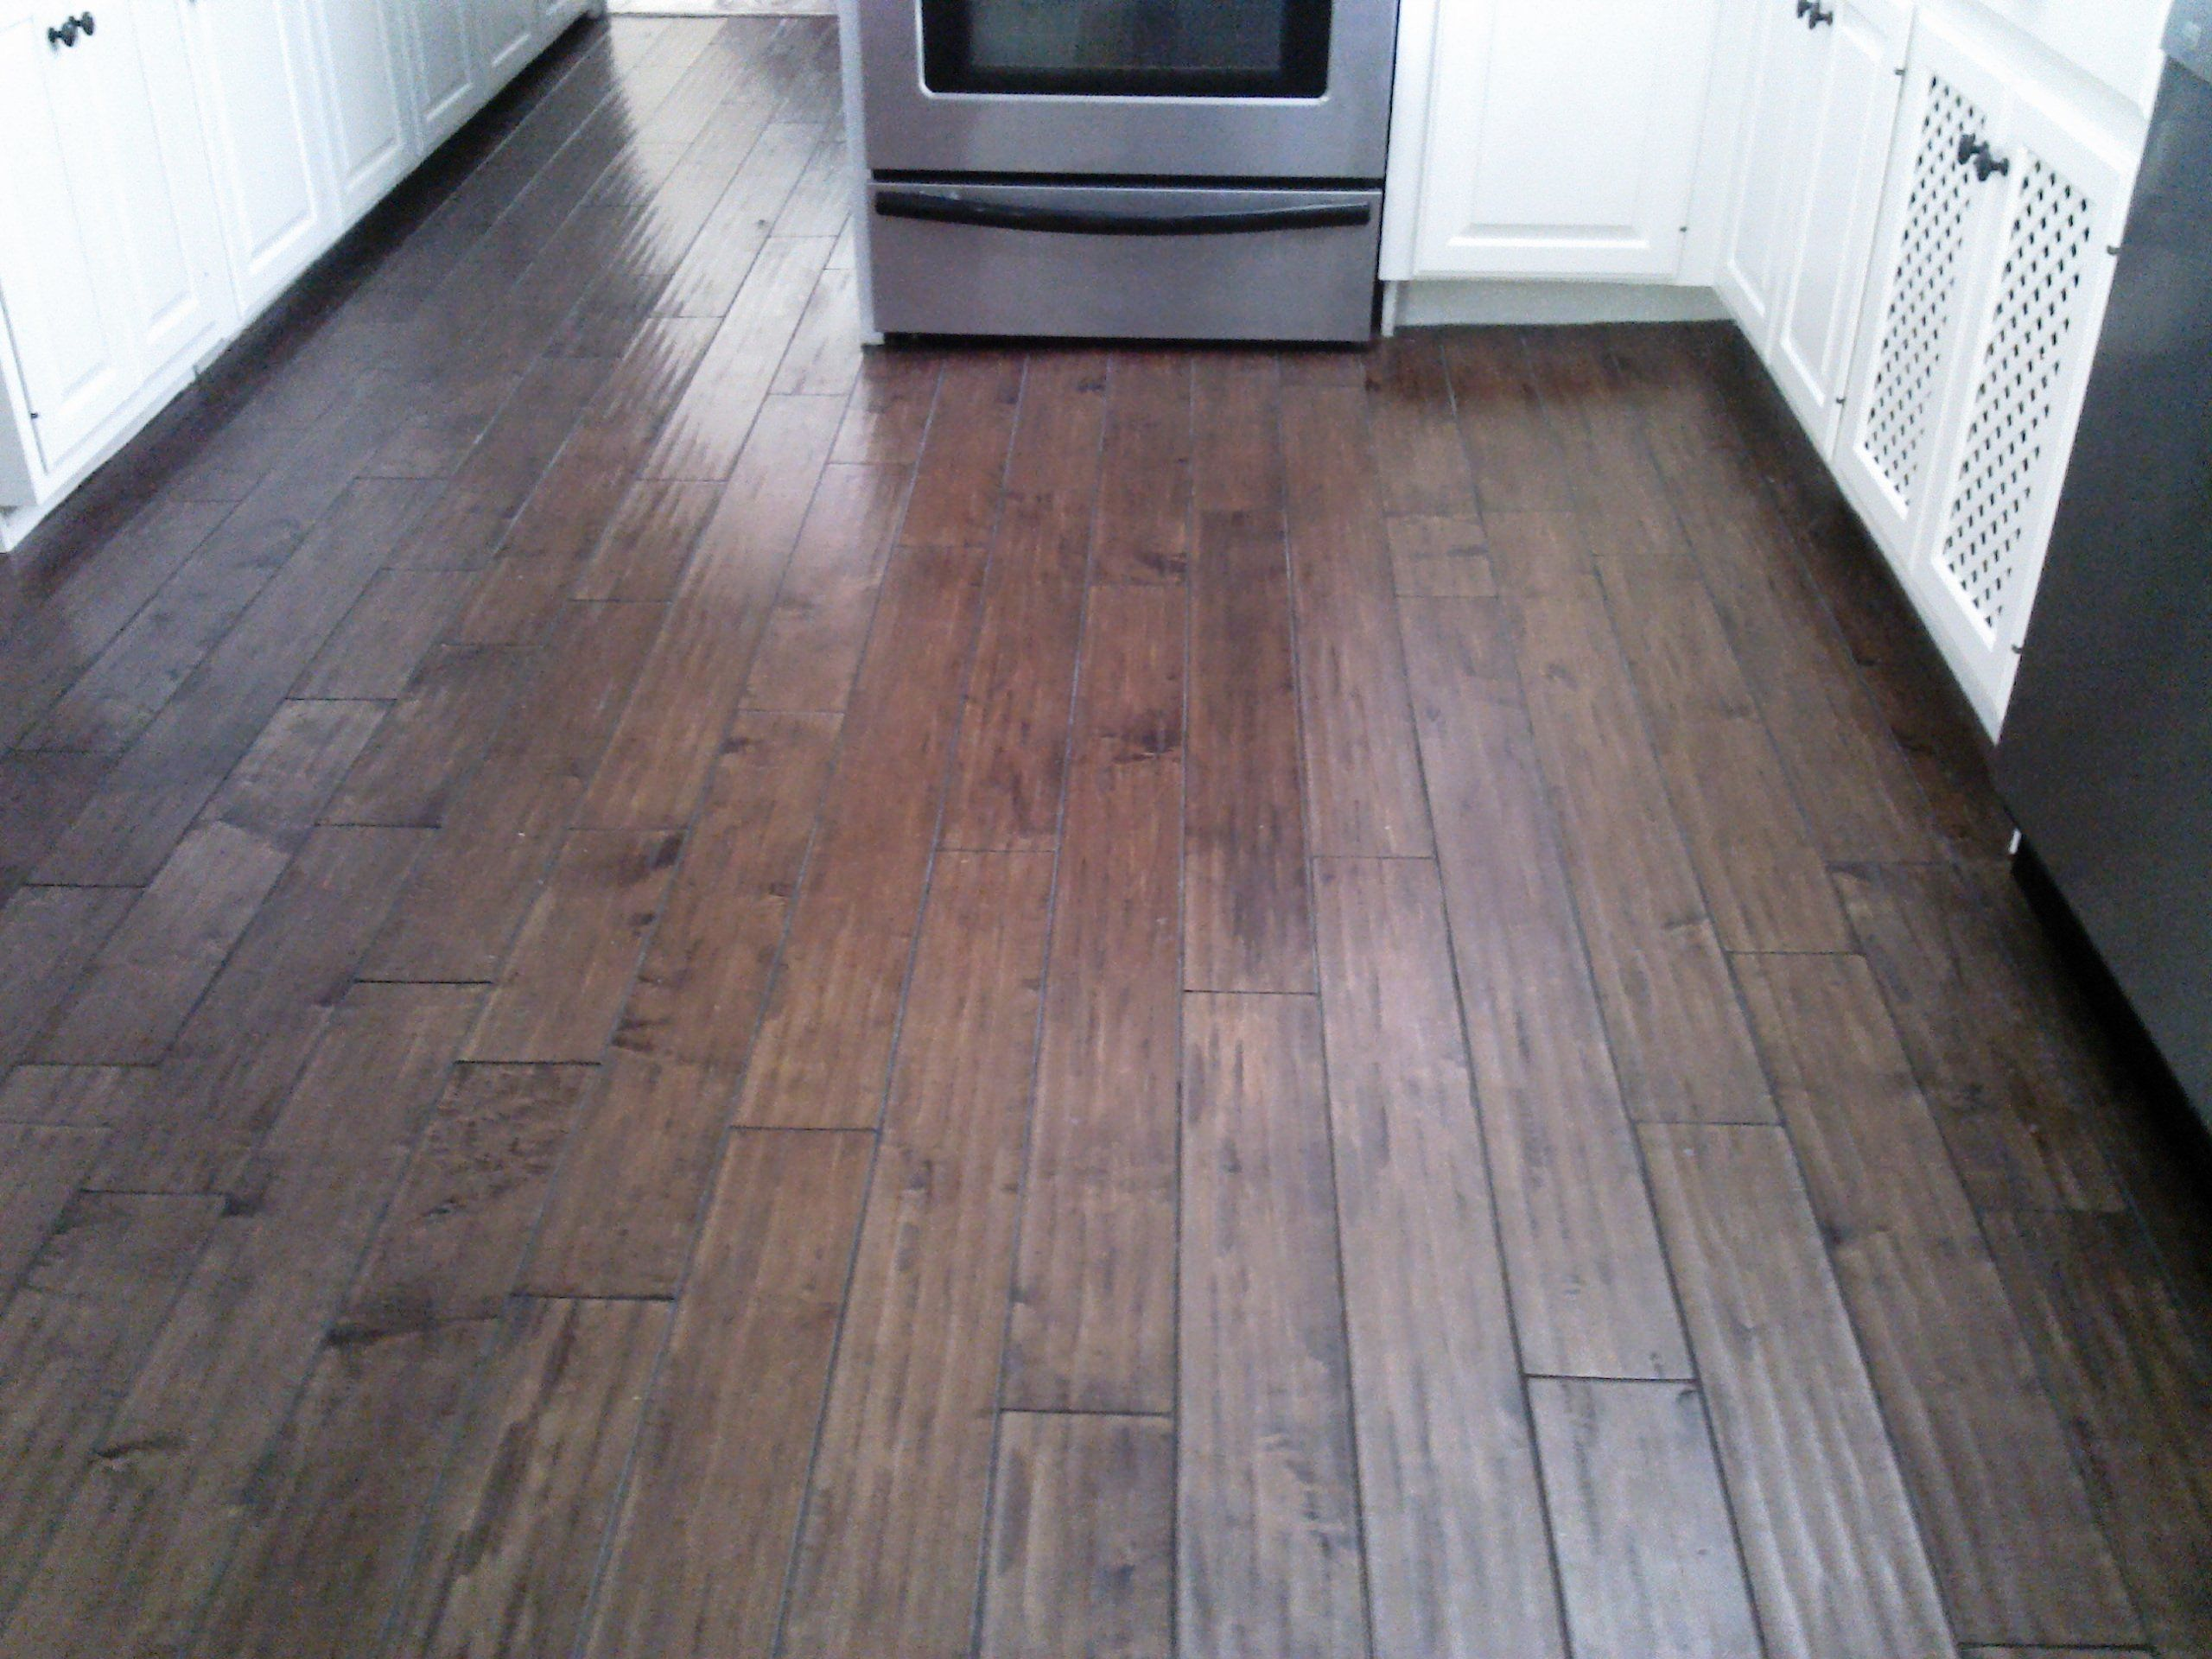 1000+ images about Flooring ideas on Pinterest - ^